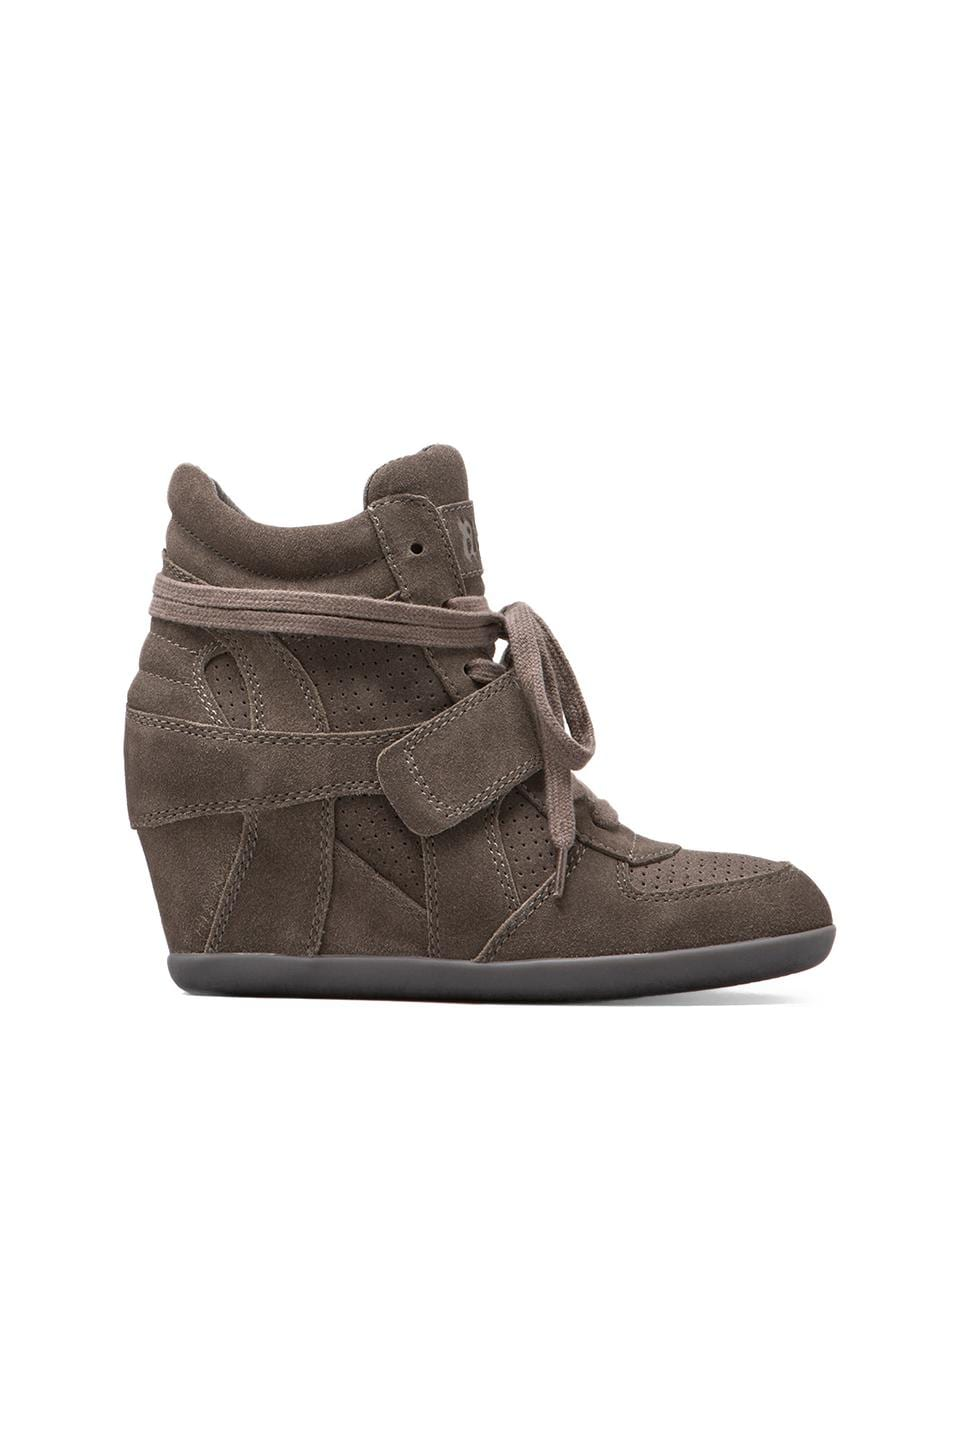 Ash Bowie Wedge Sneaker in Slate